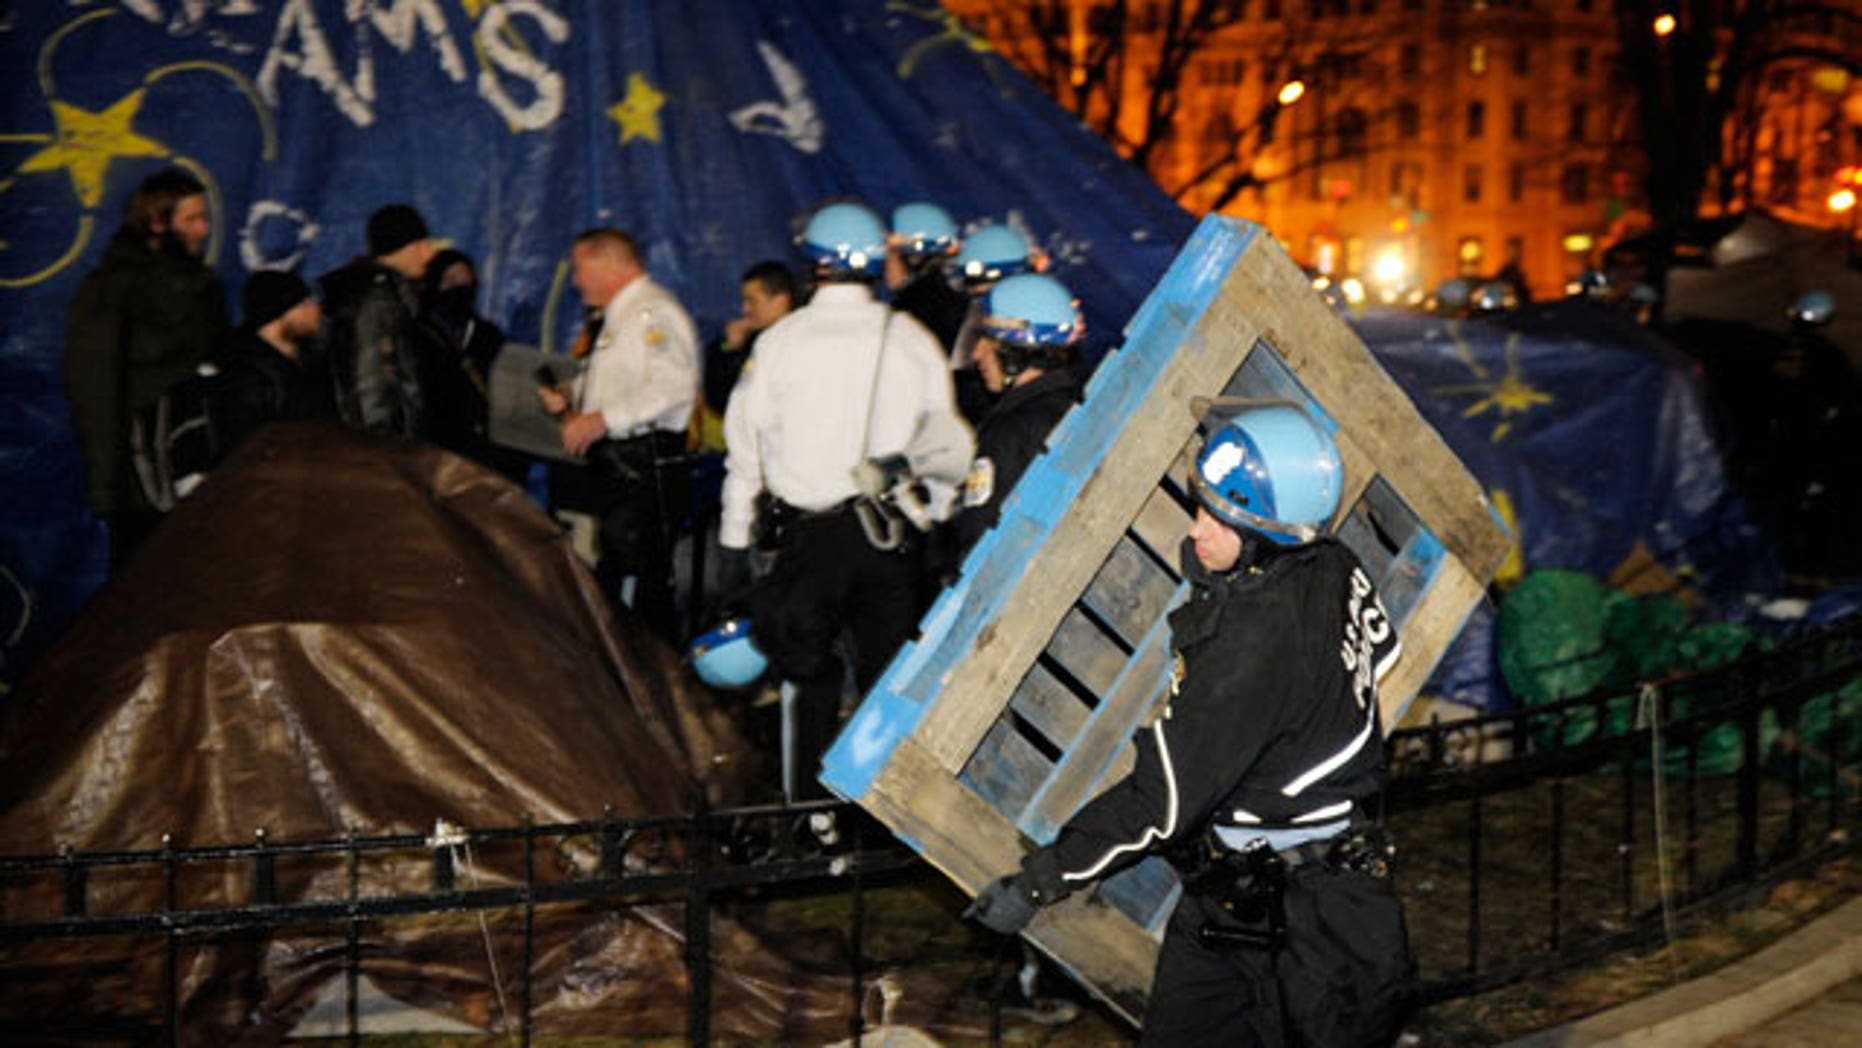 Feb. 4, 2012: A U.S. Park Police officer removes a wooden structure from an Occupy DC protestor's tent at McPherson Square in Washington.